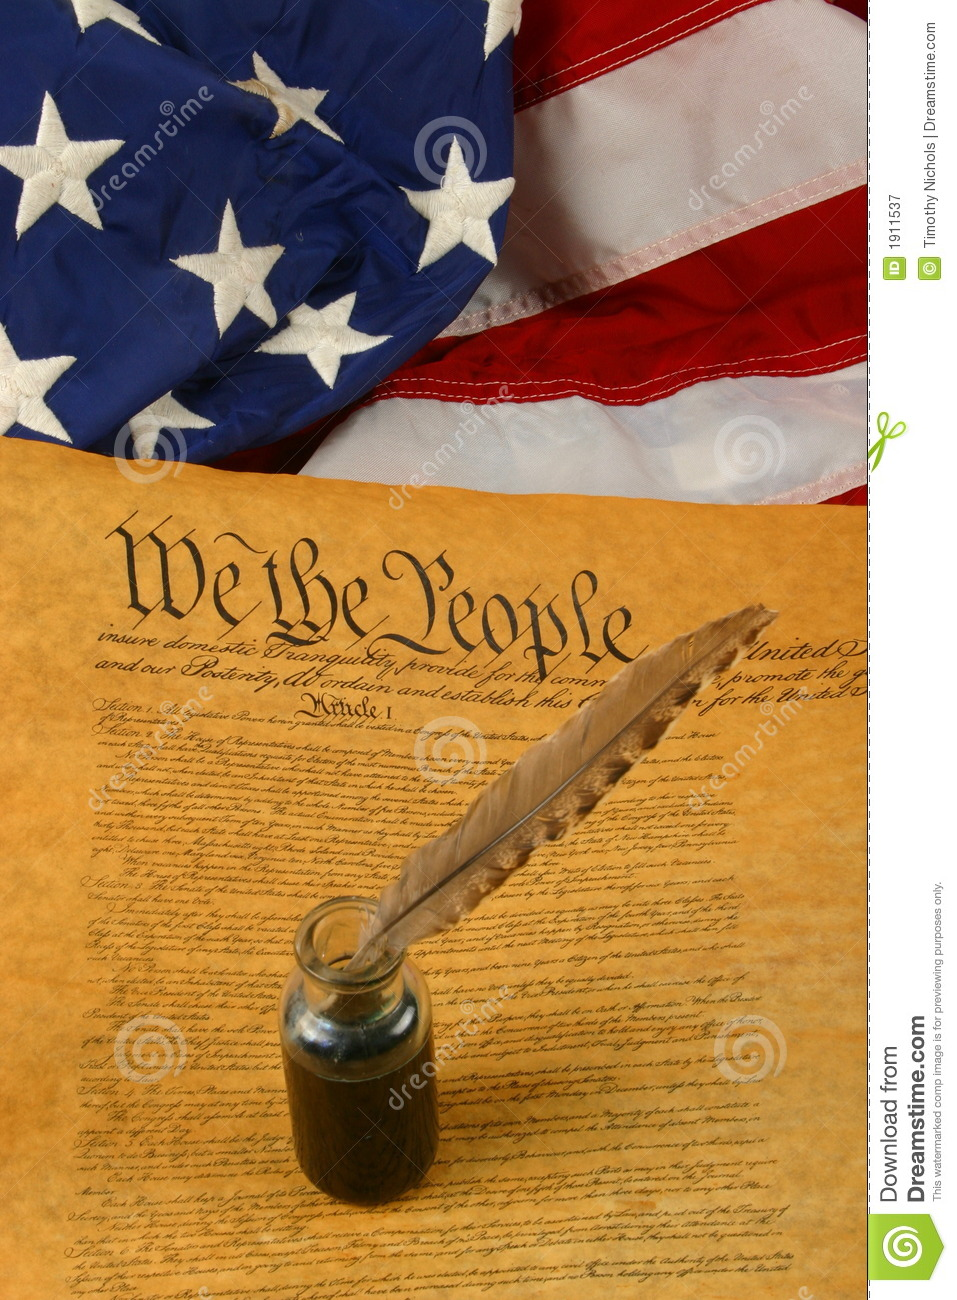 Vertical United States Constitution, Quill Pen in Inkwell, and Flag